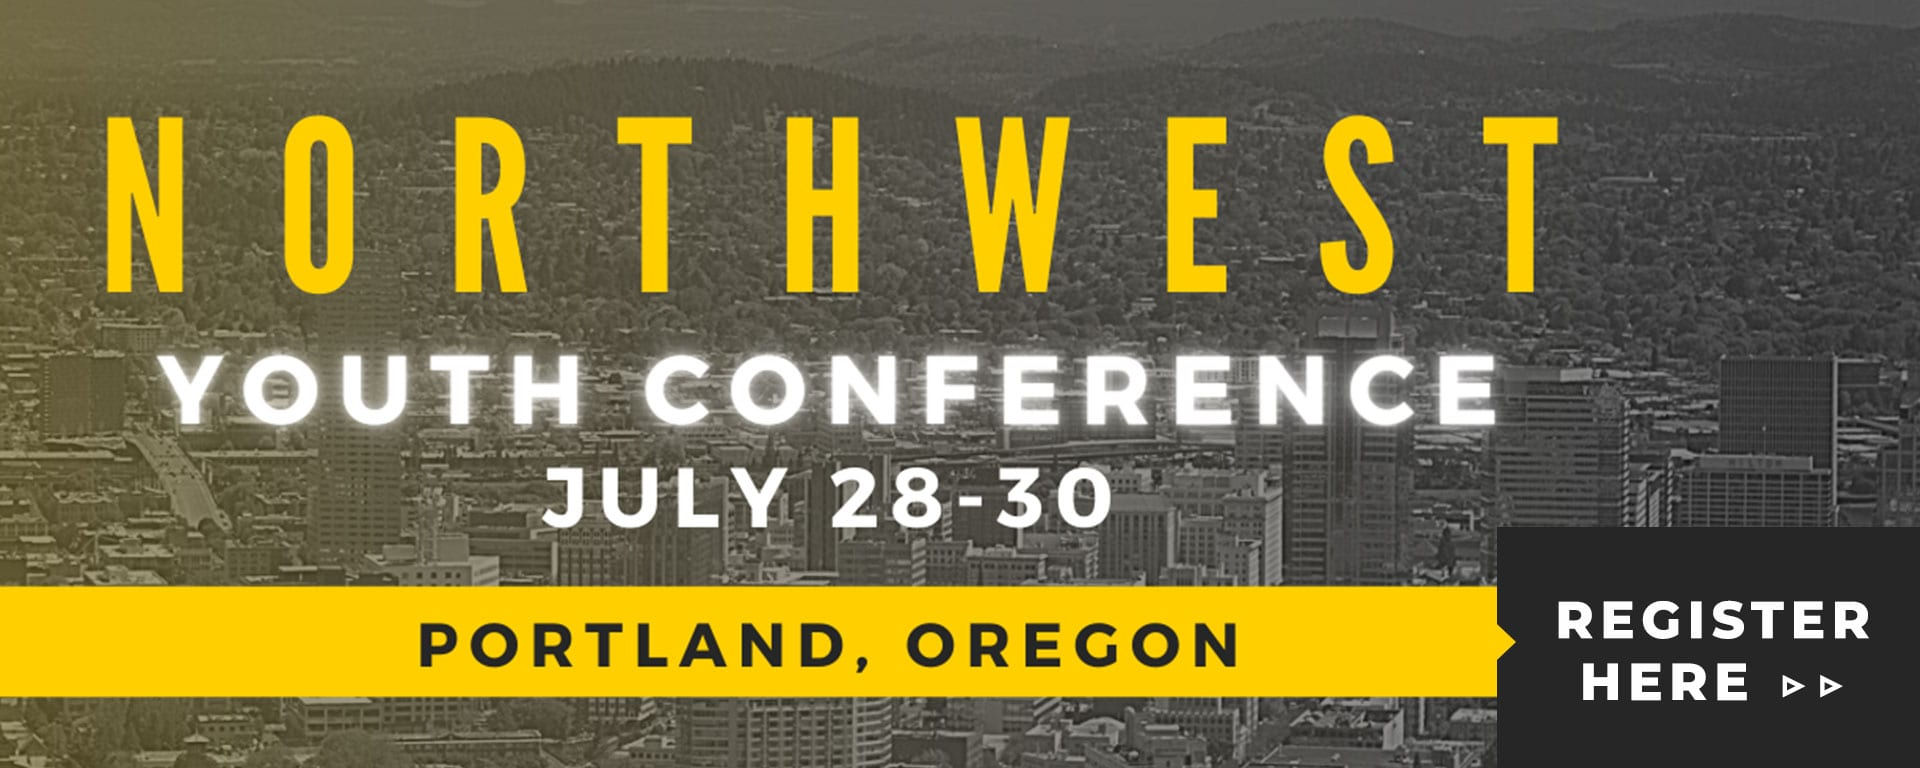 Northwest Youth Conference July 28-30, 2021